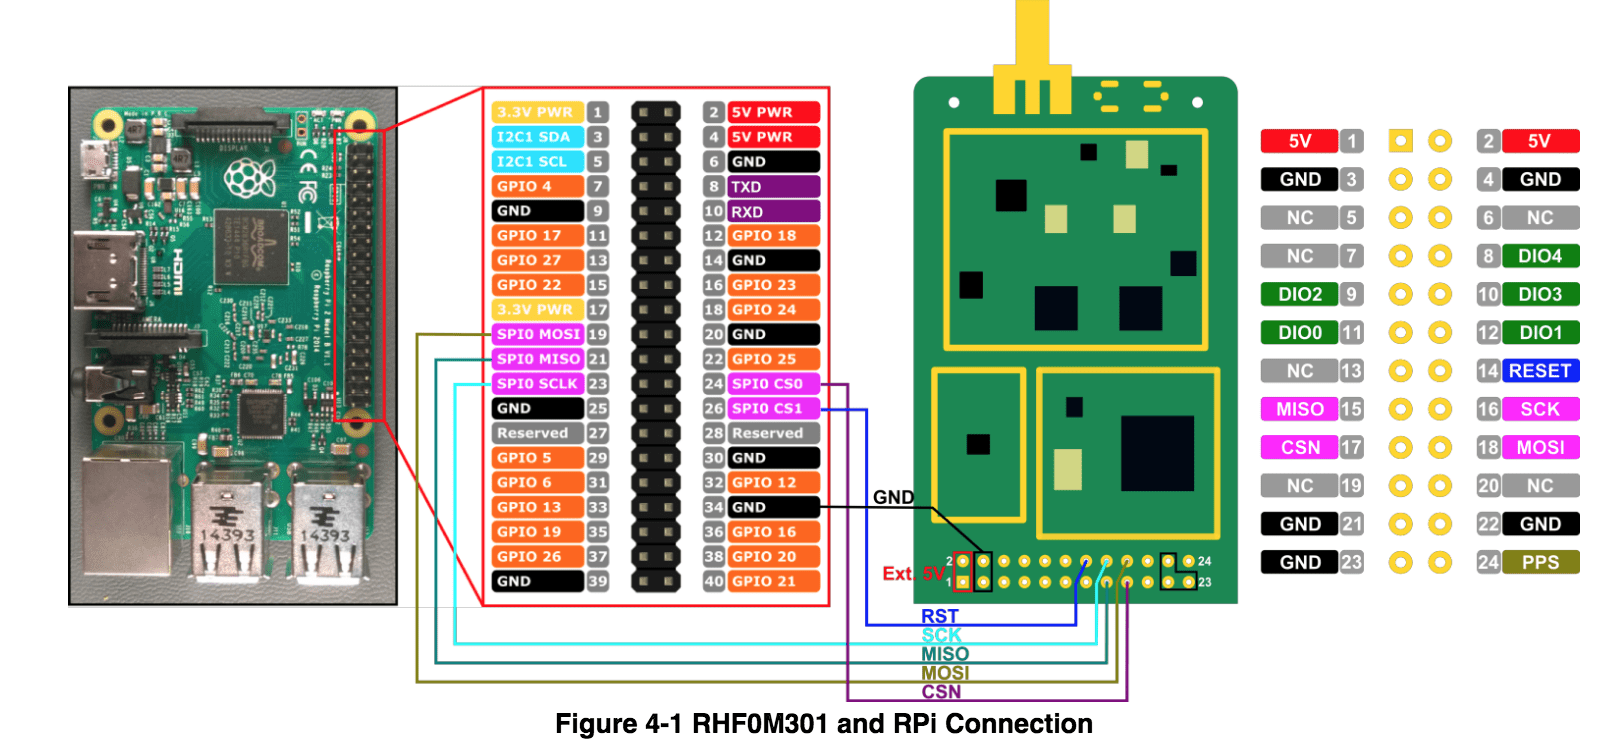 hight resolution of manually wiring the gpio pins to the concentrator can be a bit difficult as it s likely to misplace a connection since the hardware is not labeled